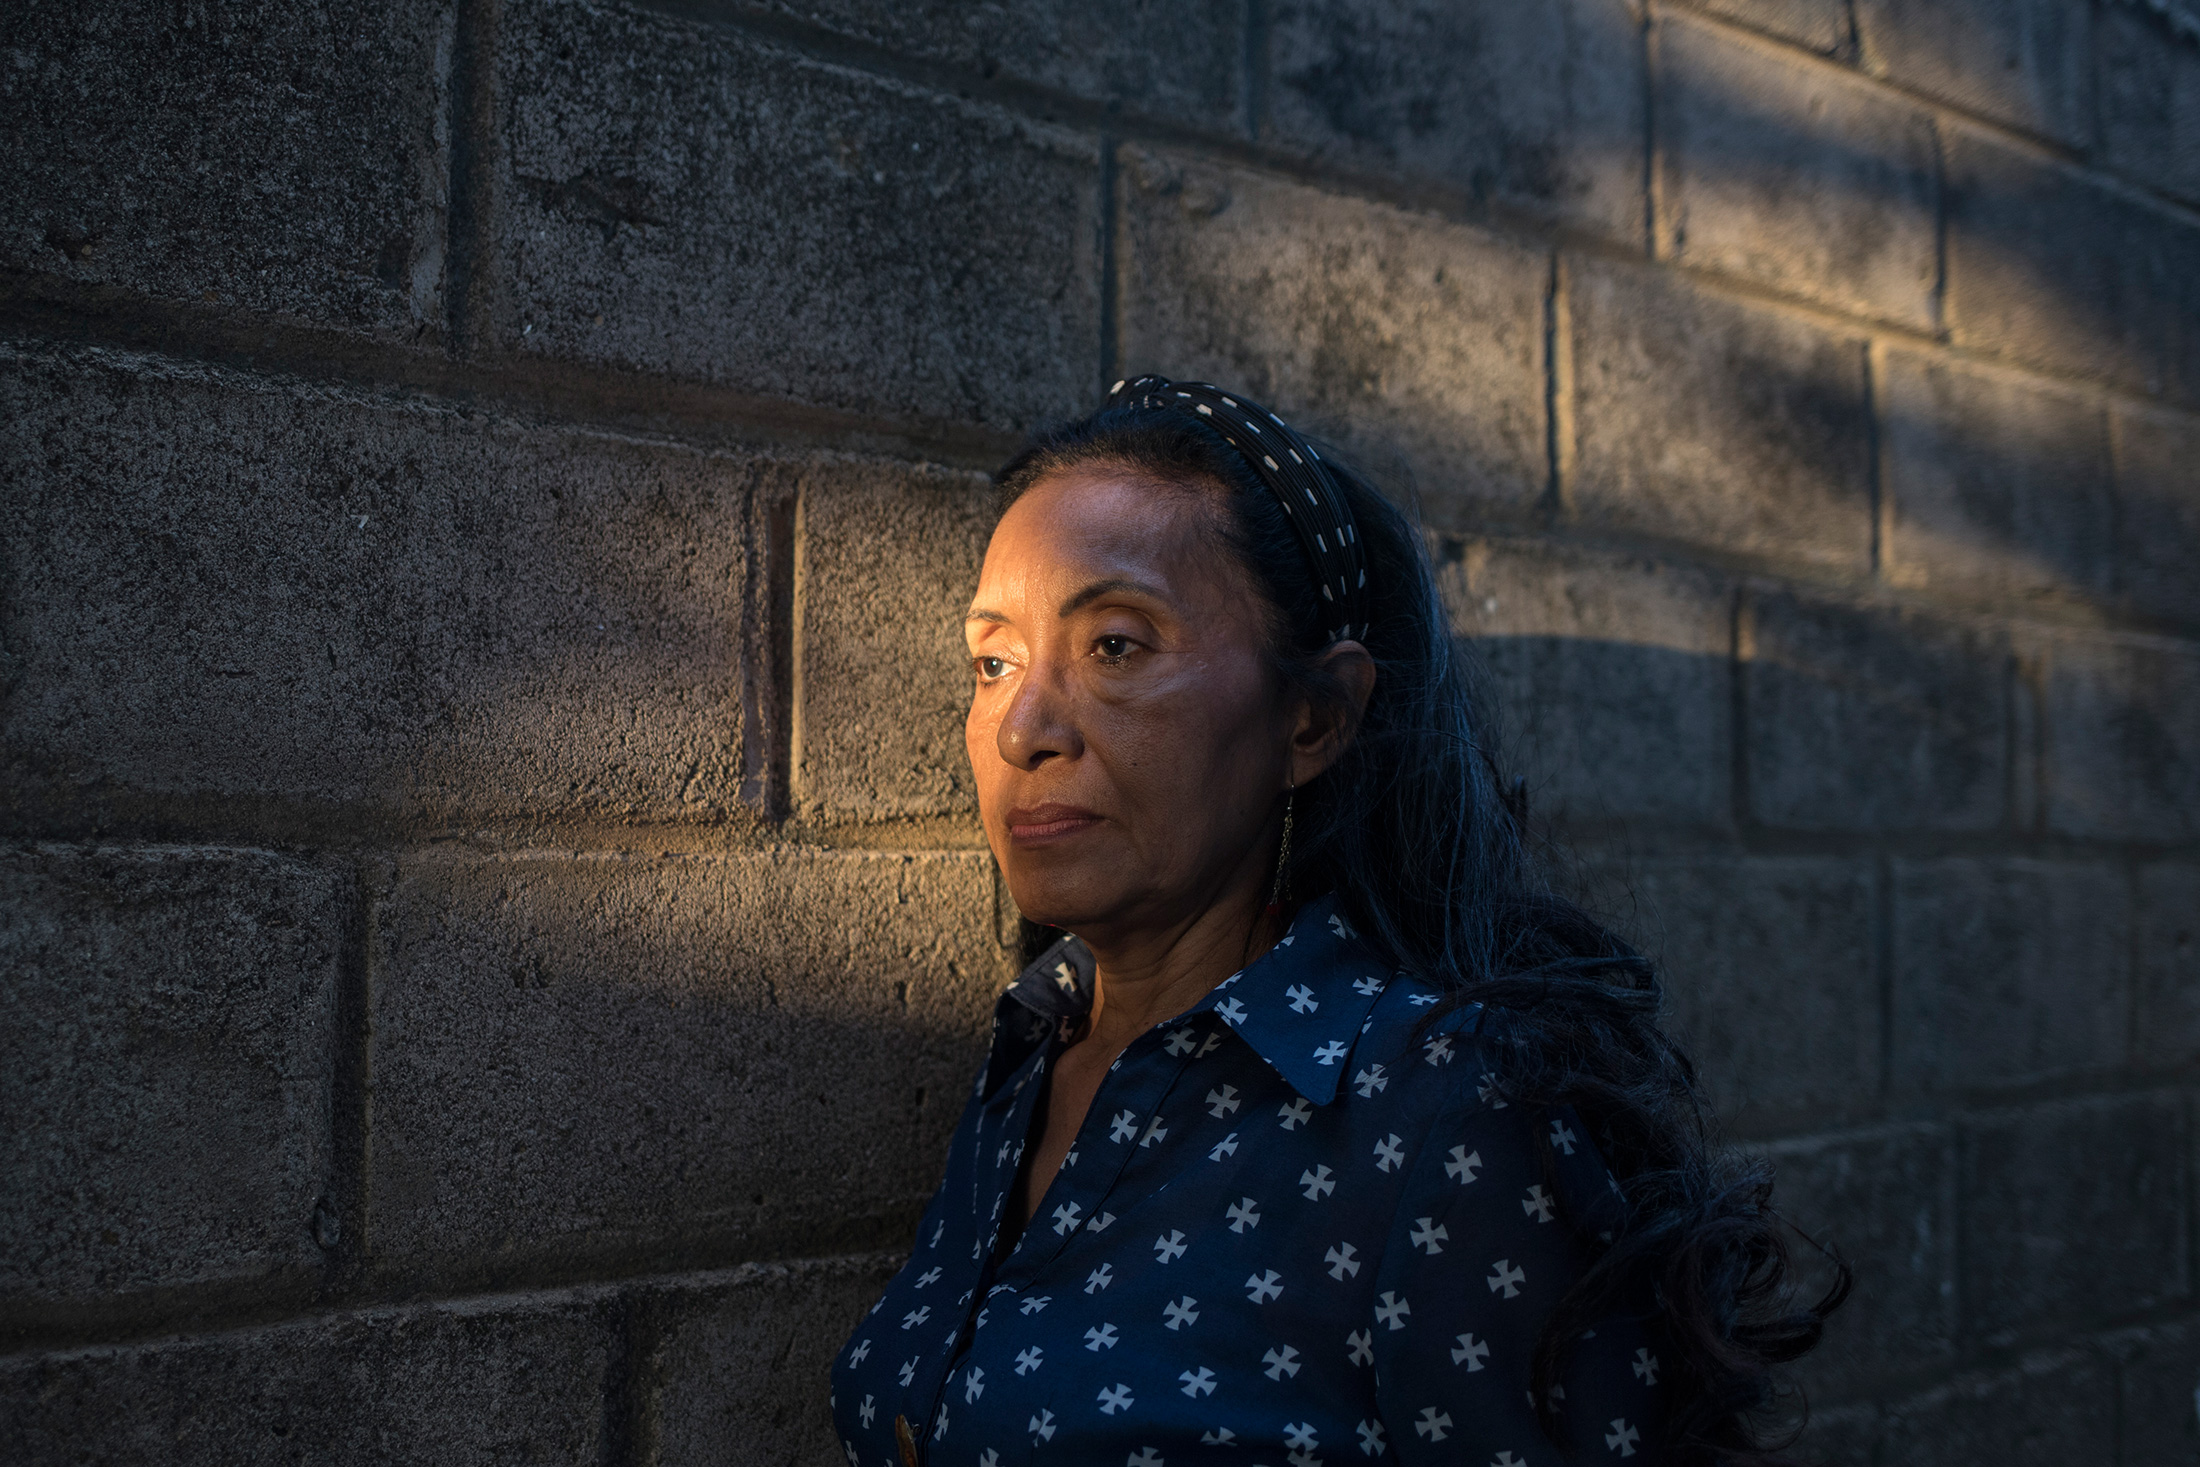 Gomez was born in Maicao and has spent decades witnessing its struggles.